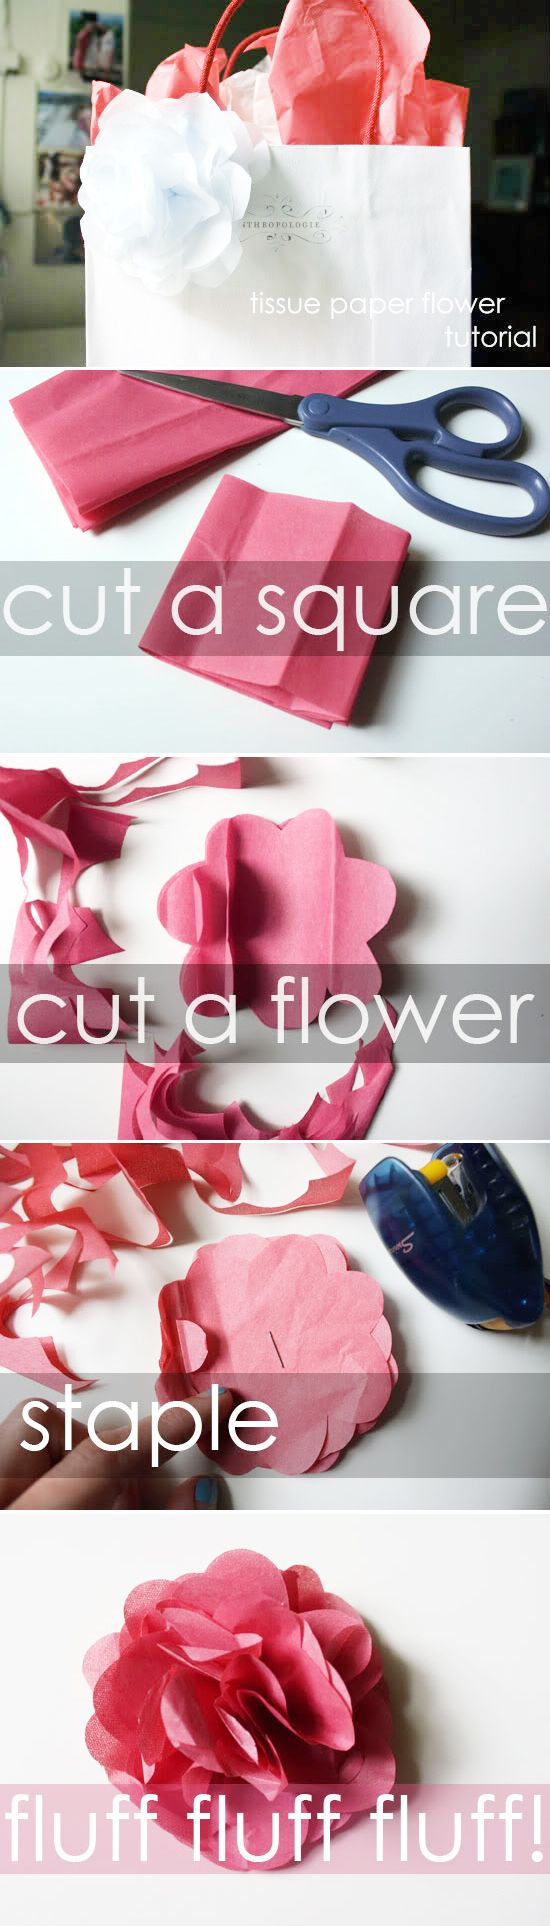 tissue paper flower....easy!: Tissue Paper Flower, Diy Craft, Tissue Flower